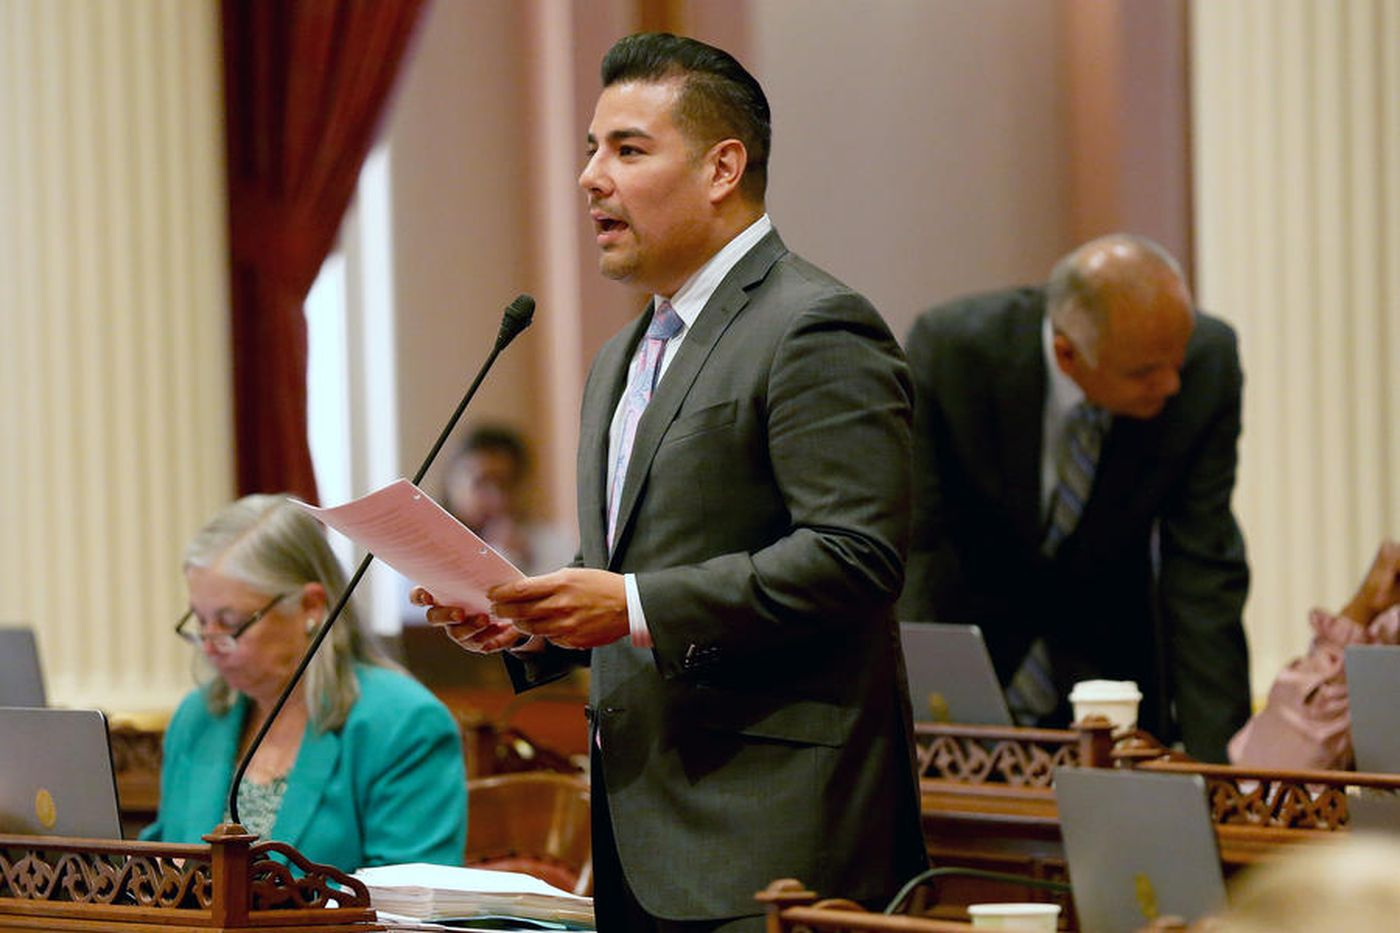 State Sen. Ricardo Lara presents a bill on the Senate floor in this undated photo. (Credit: Gary Coronado / Los Angeles Times)